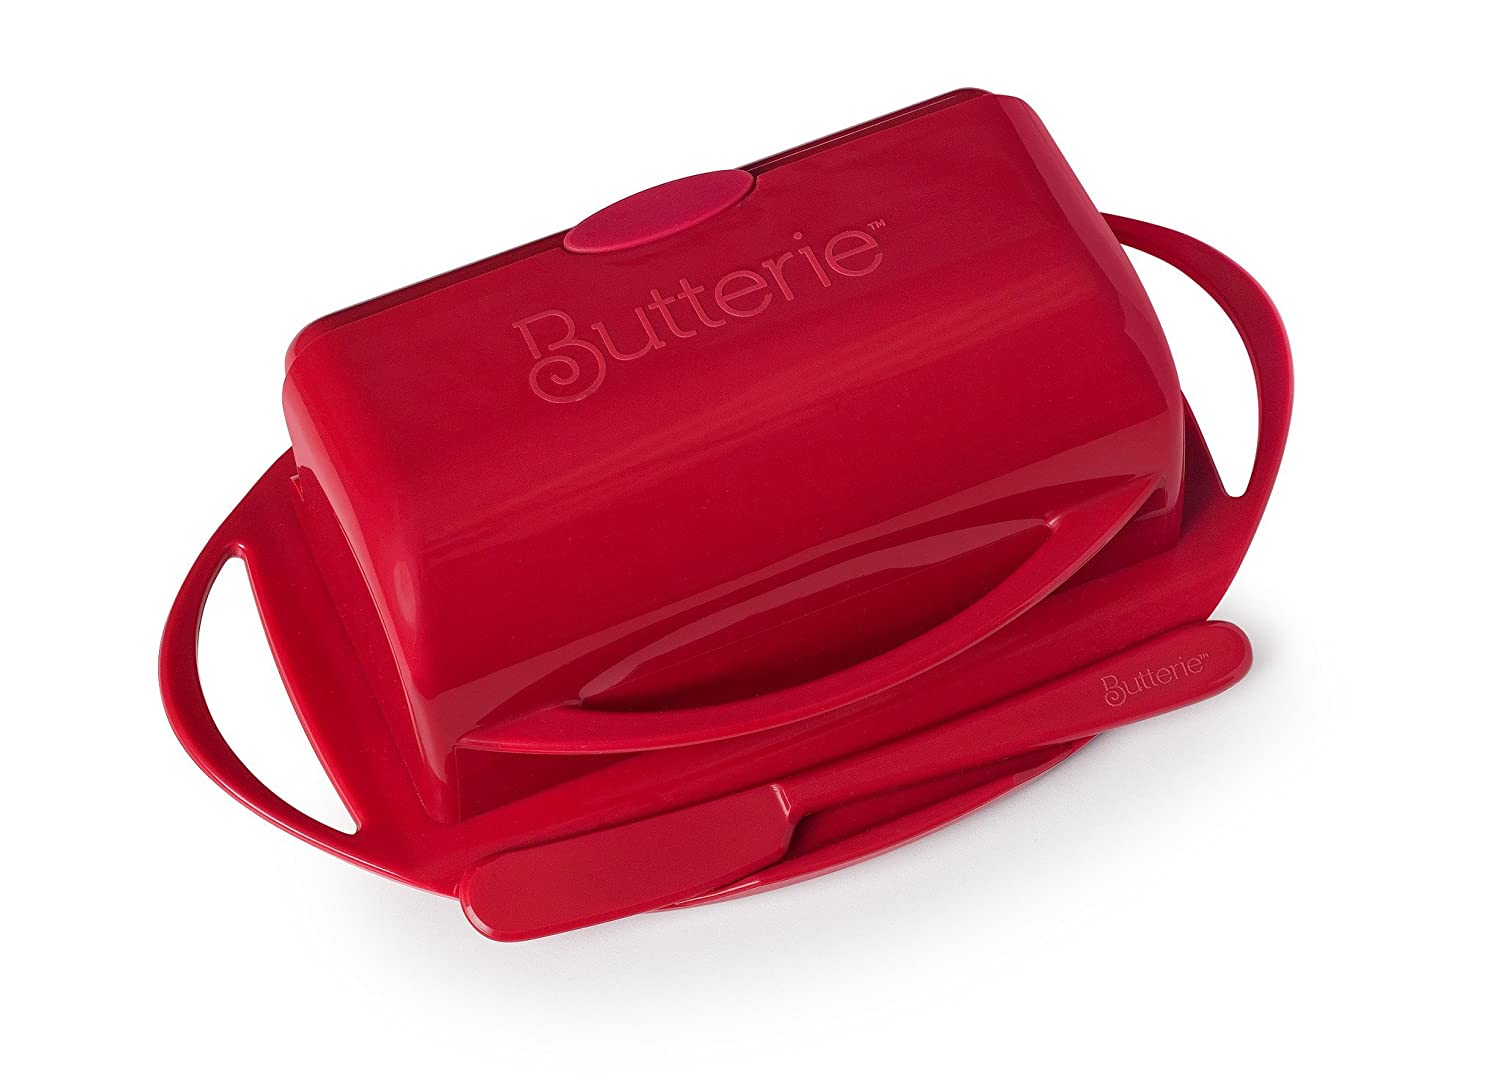 Butterie Flip-Top Butter Dish with Spreader in Red BPA-free plastic Easy Clean Dishwasher NEW